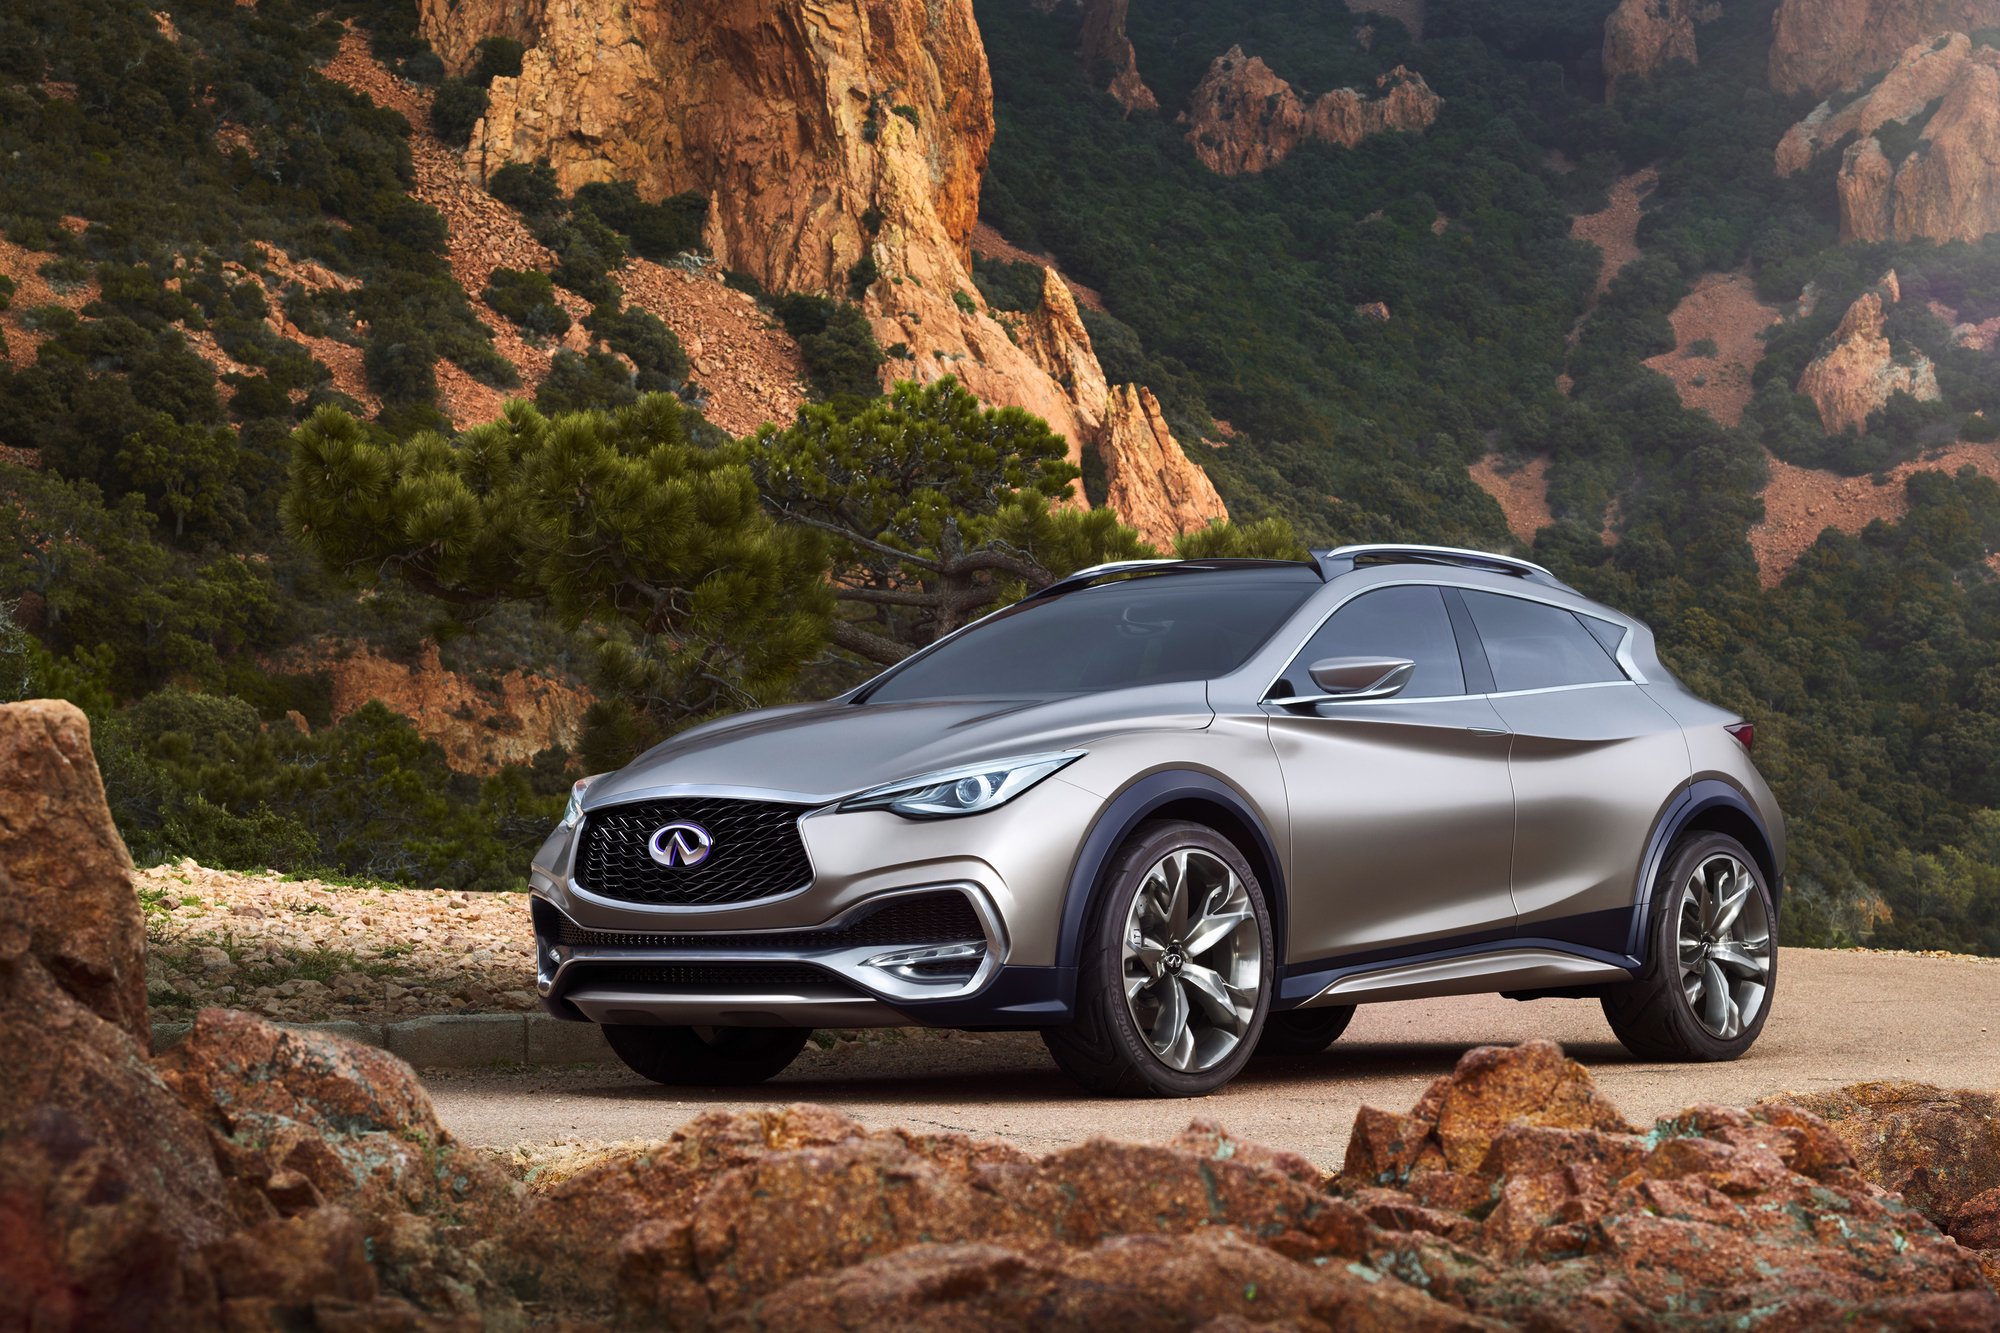 angeles purposes premium for crossover show active a all moto los infinity infiniti auto